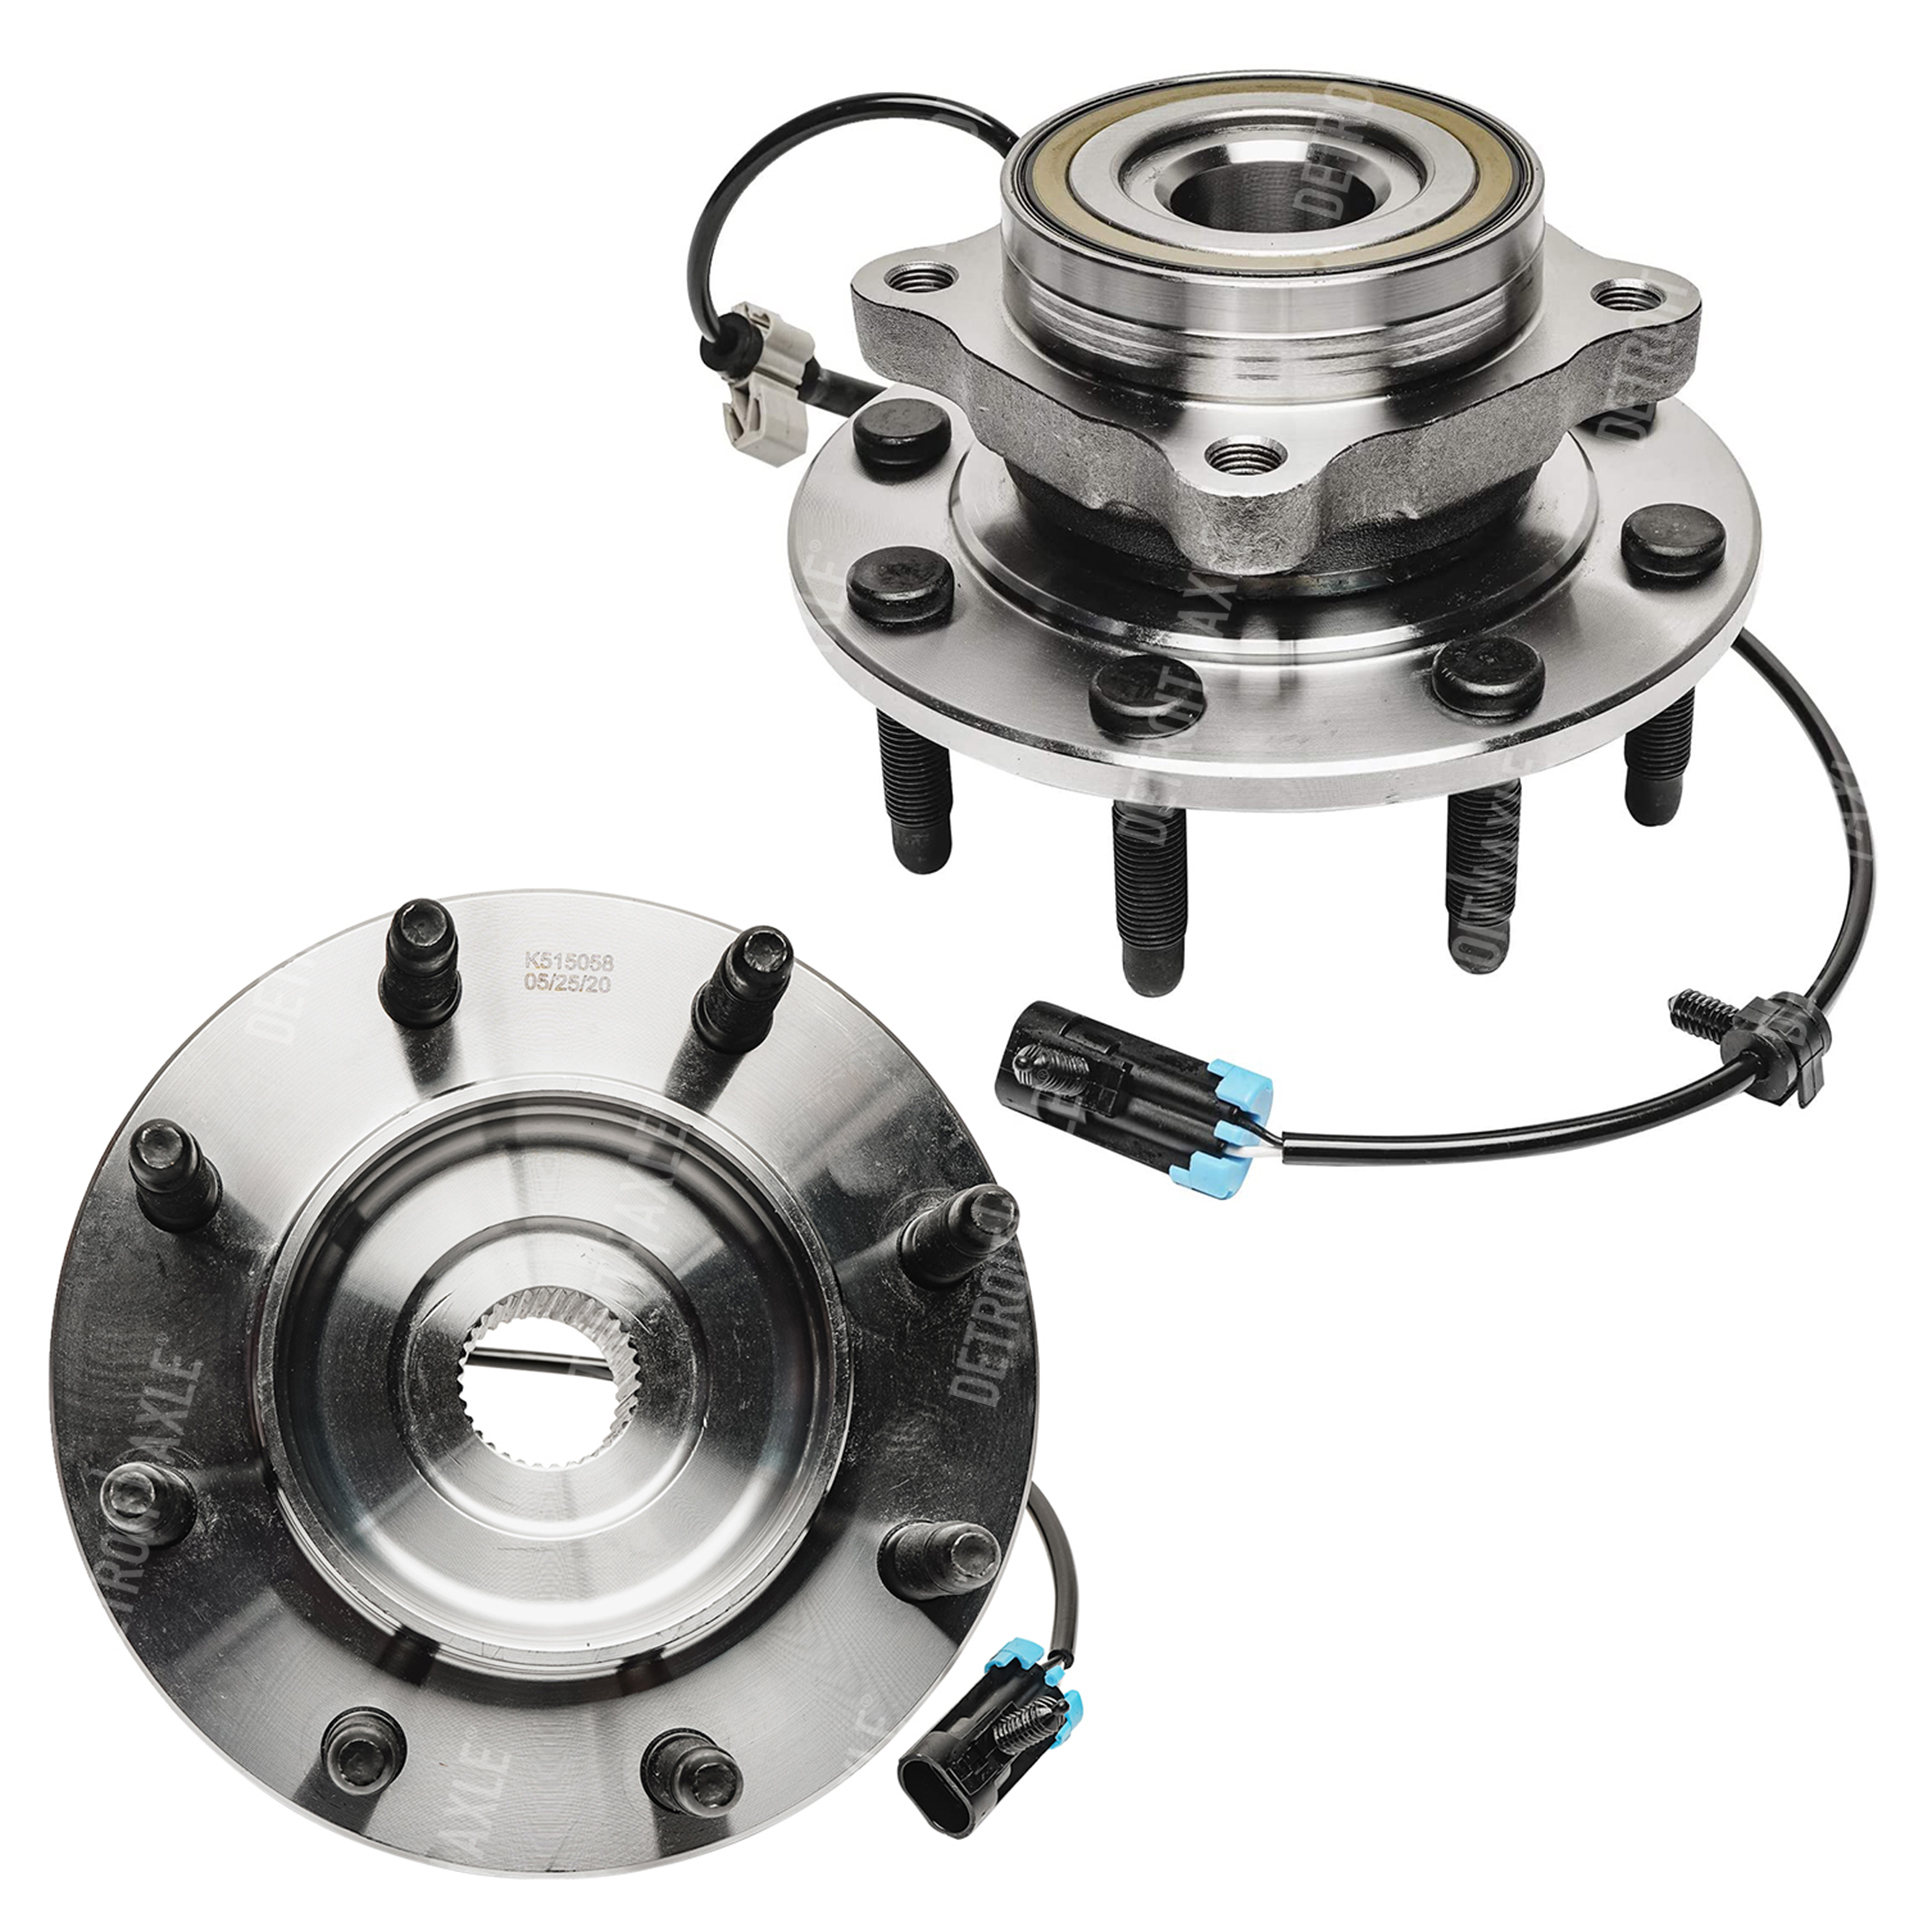 Both (2) 8 LUG w/ABS Front Wheel Bearing and Hub Assembly ? Driver or Passenger Side For 4WD 4x4 ONLY - Silverado 2500 3500 , Sierra 2500 3500